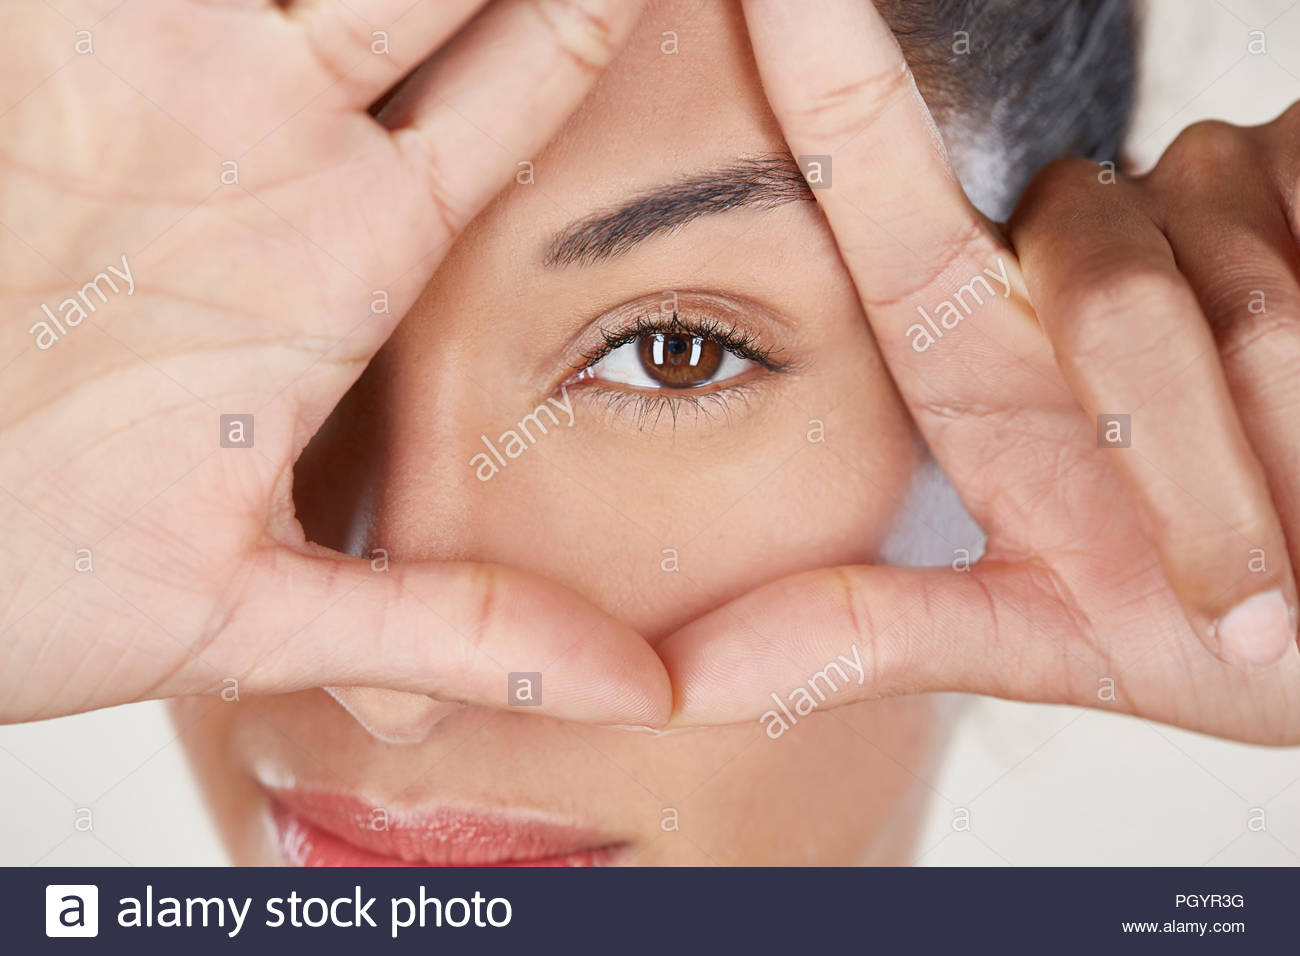 Portrait of woman looking through fingers. - Stock Image